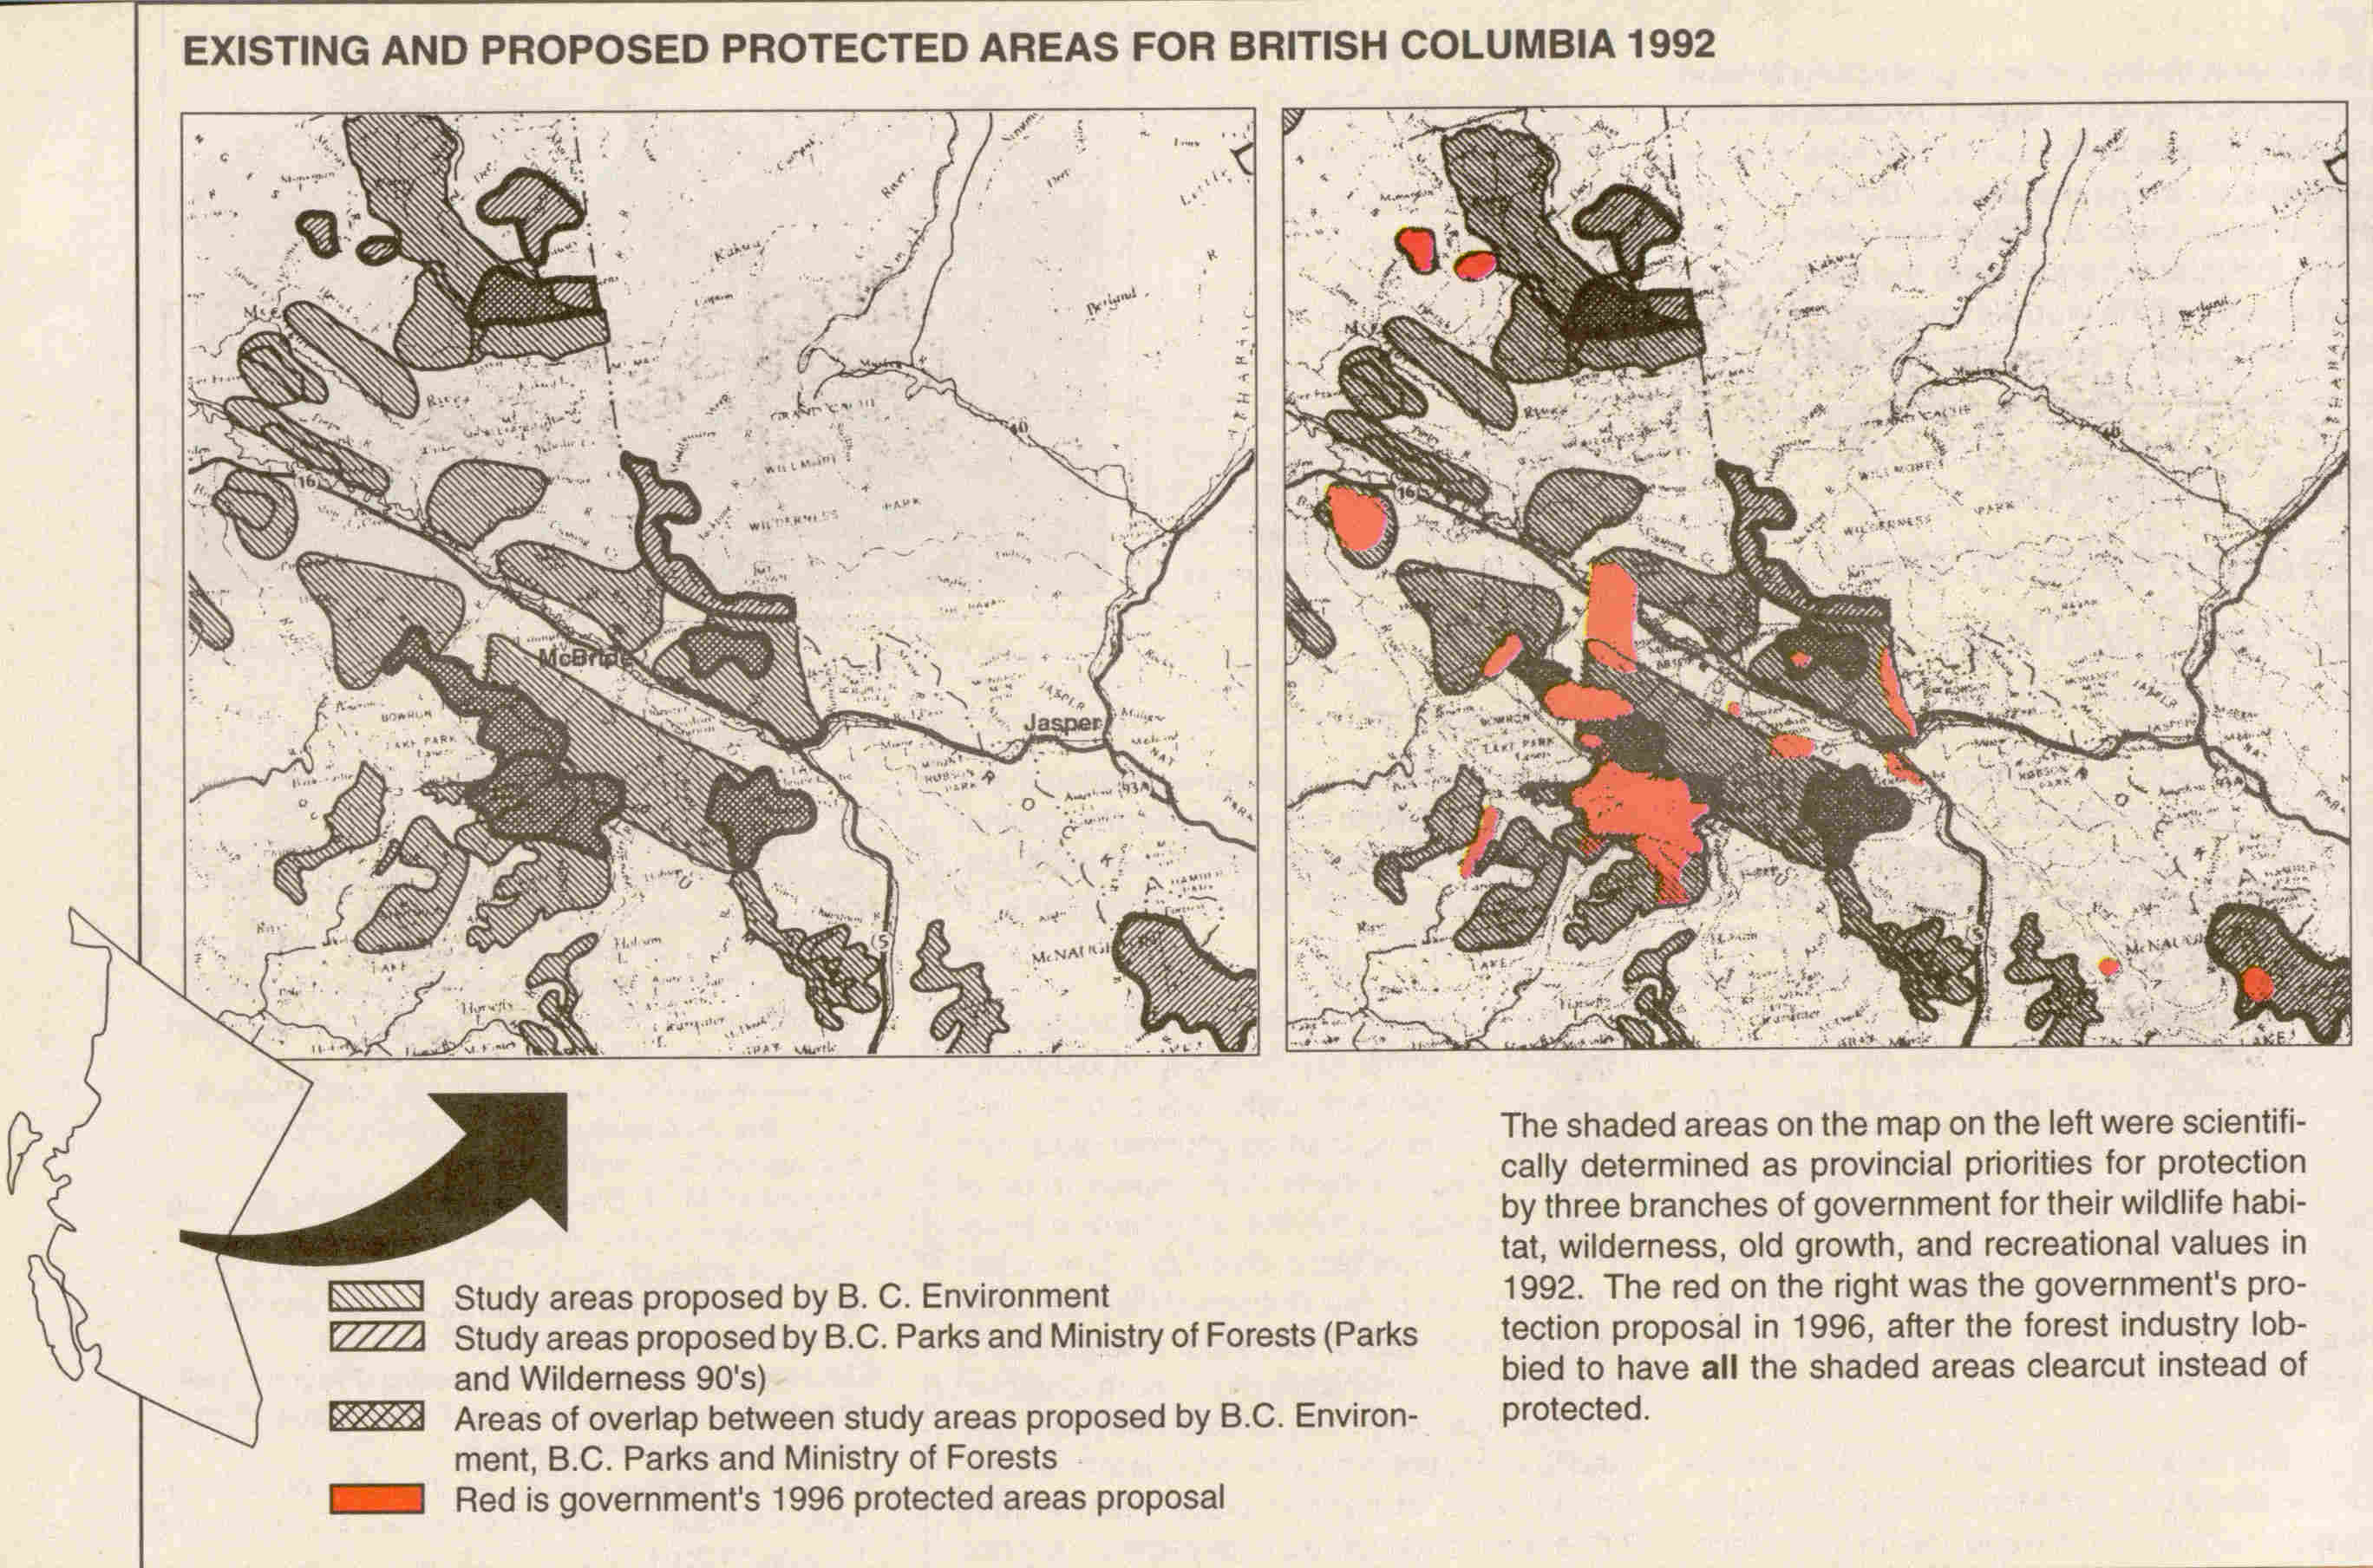 Protected Areas for BC 1992 and 1996 (257K)